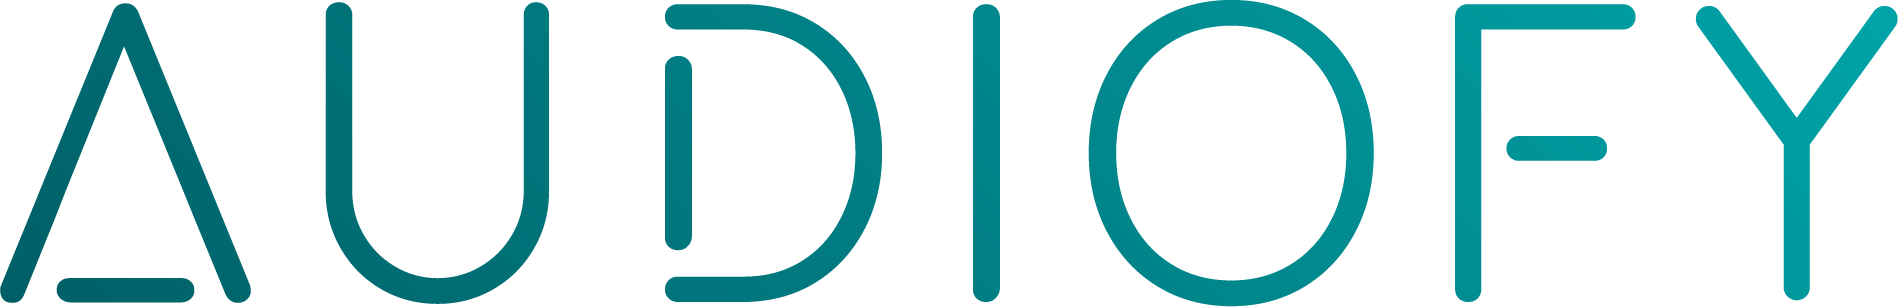 Teal coloured text logo for AudioFy